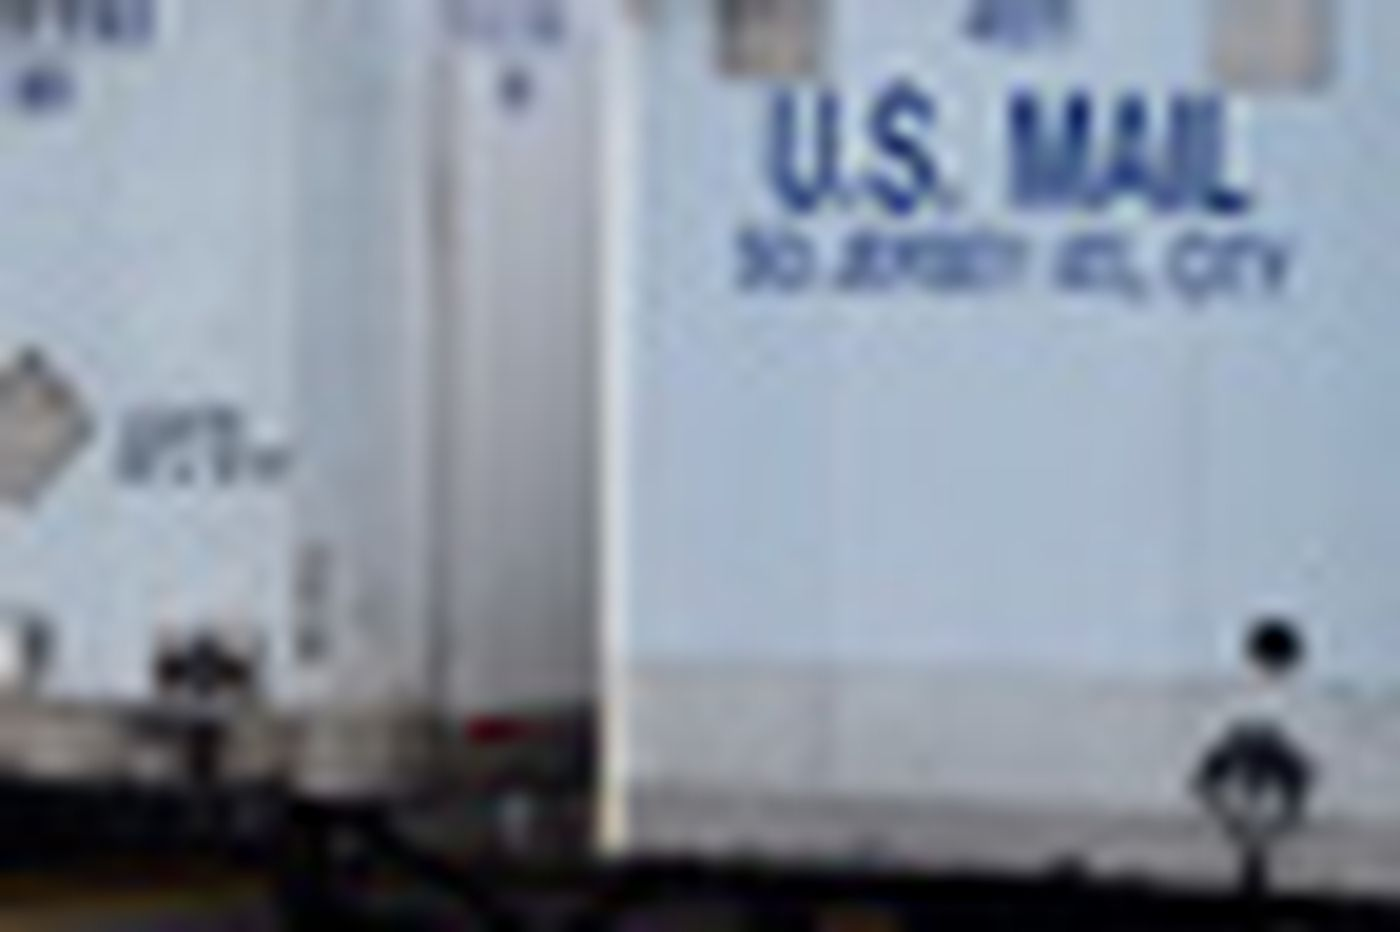 Local USPS facilities riled about closings rumors